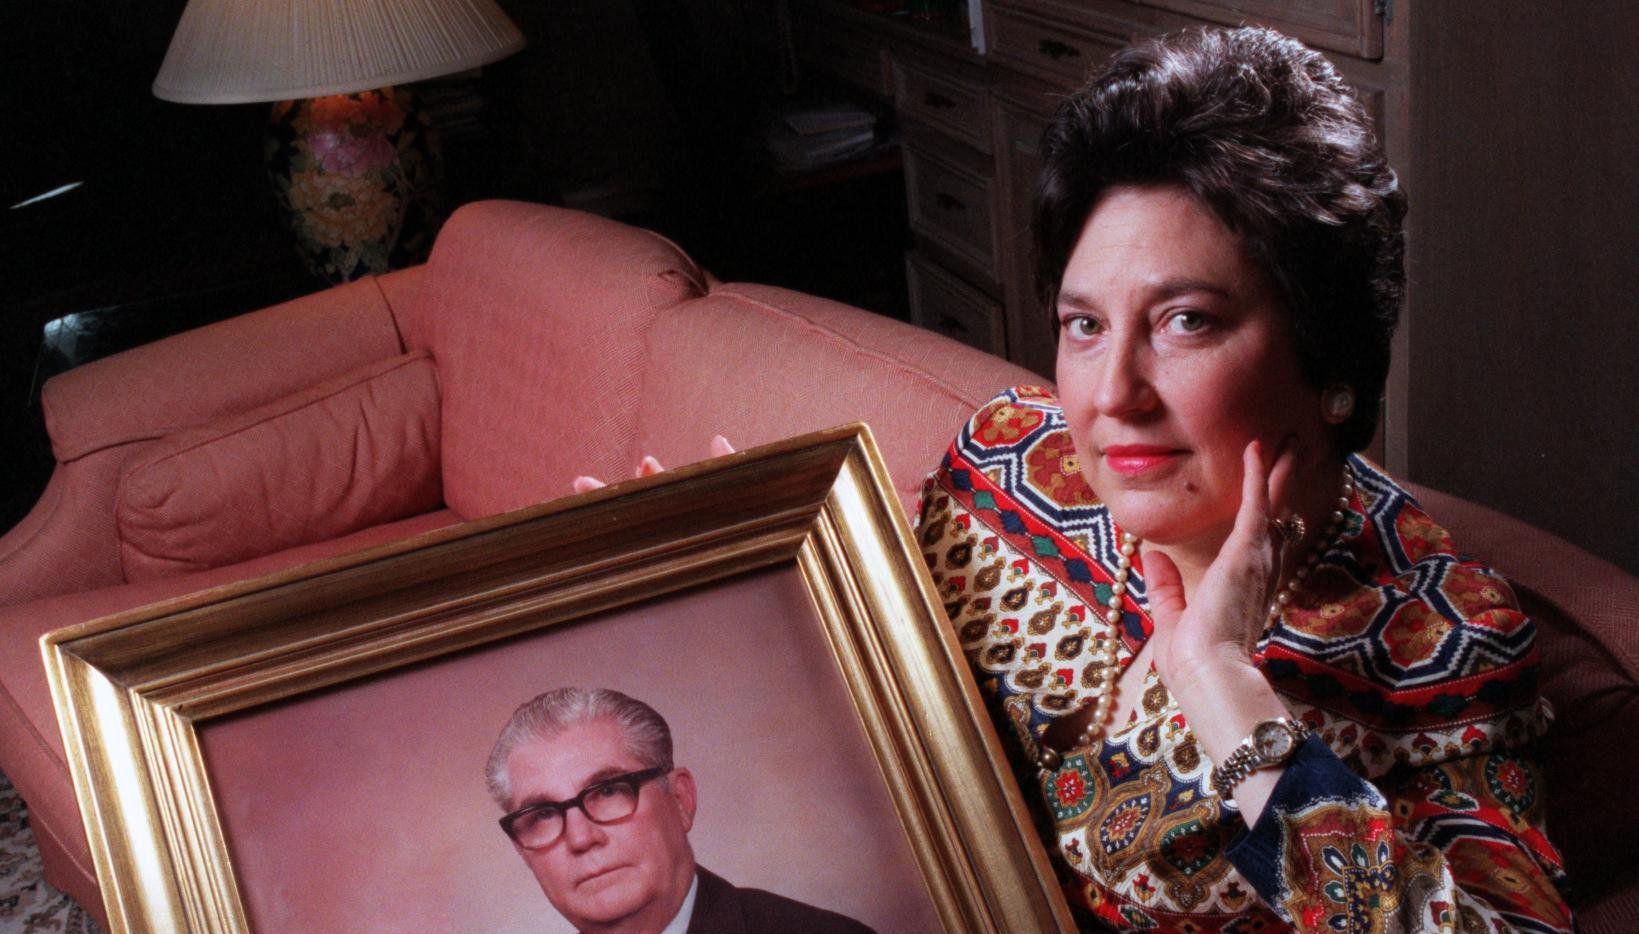 Camille Keith (at right) posed with a portrait of her late father, Marvin Keith, in 1996 as she spoke out about her work as an ombudsman for the elderly who are confined to nursing homes.